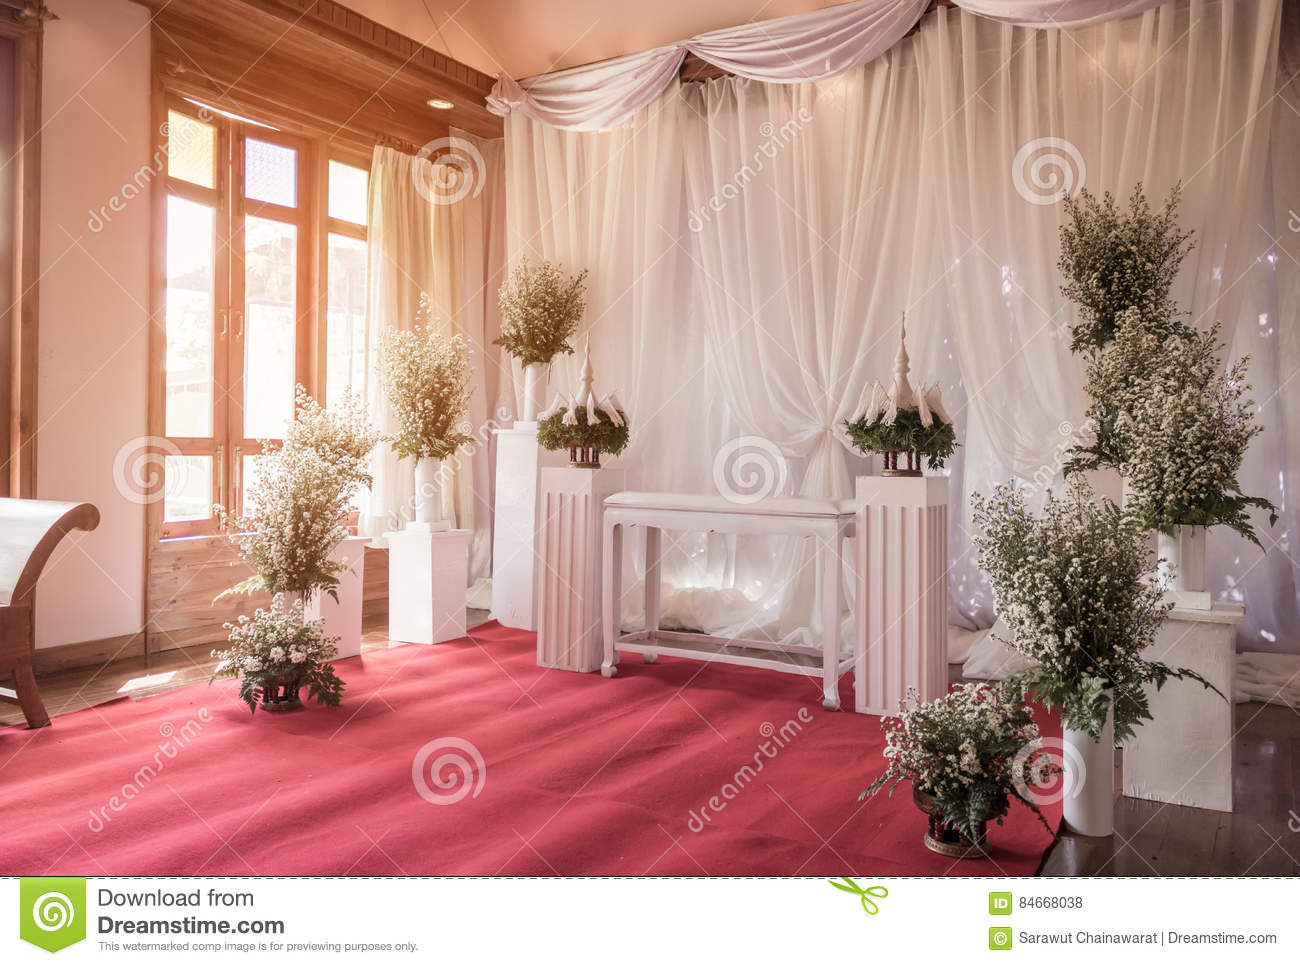 Interior ceremony wedding room decoration by red carpet for Wedding interior decoration images